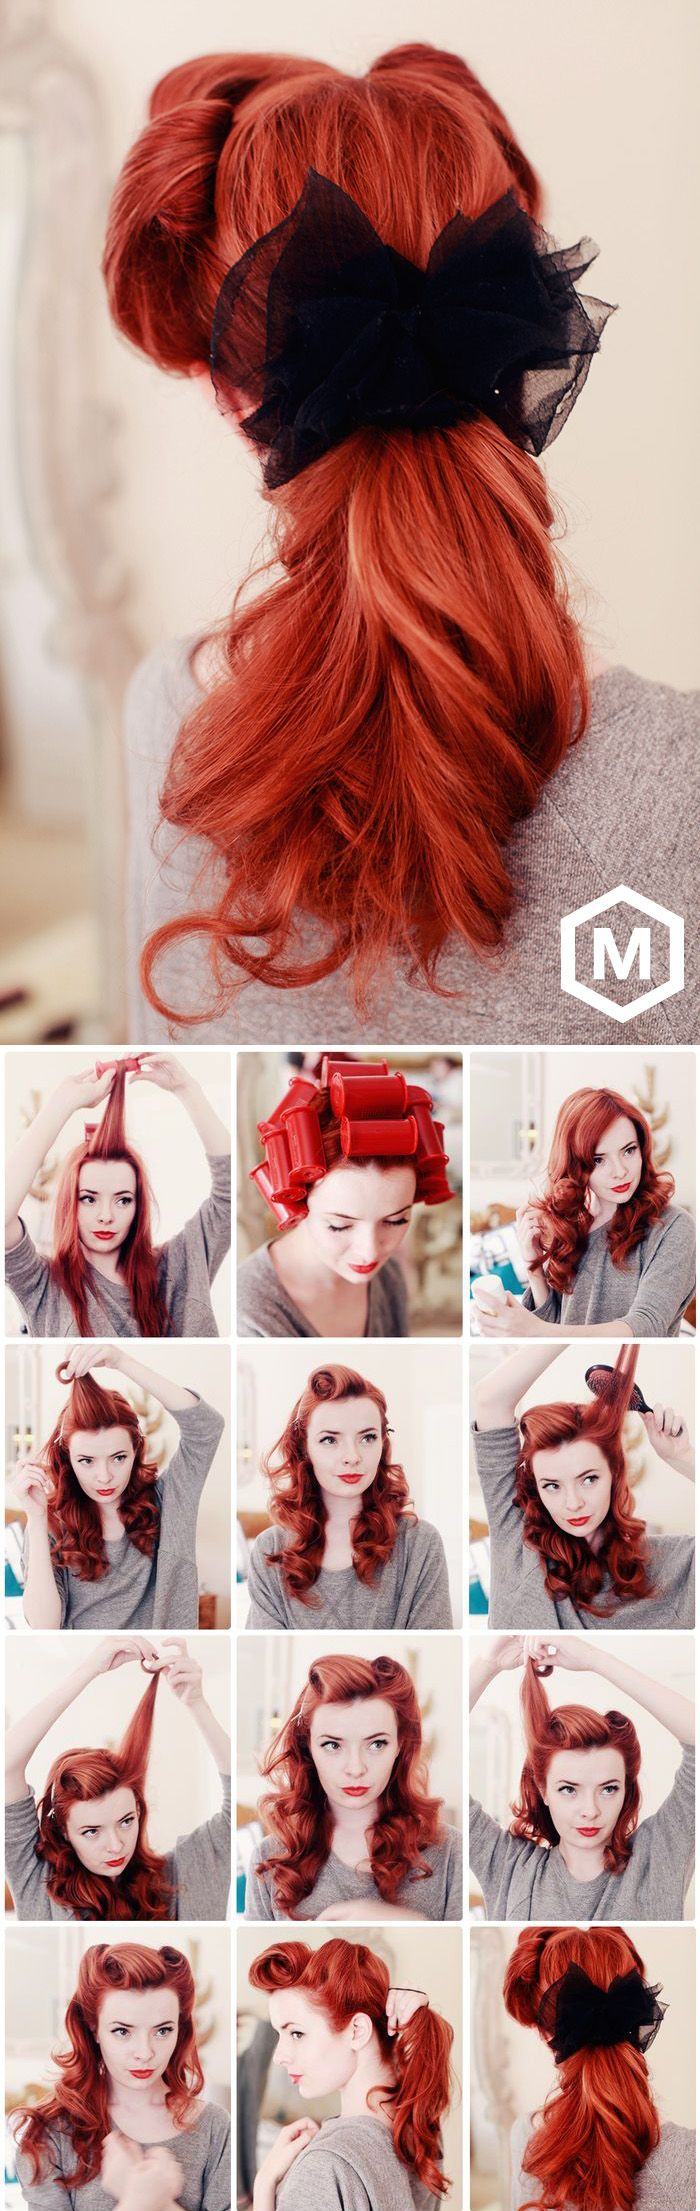 Pinup Ponytail - How To Tutorial vintage 50's retro hairstyle.